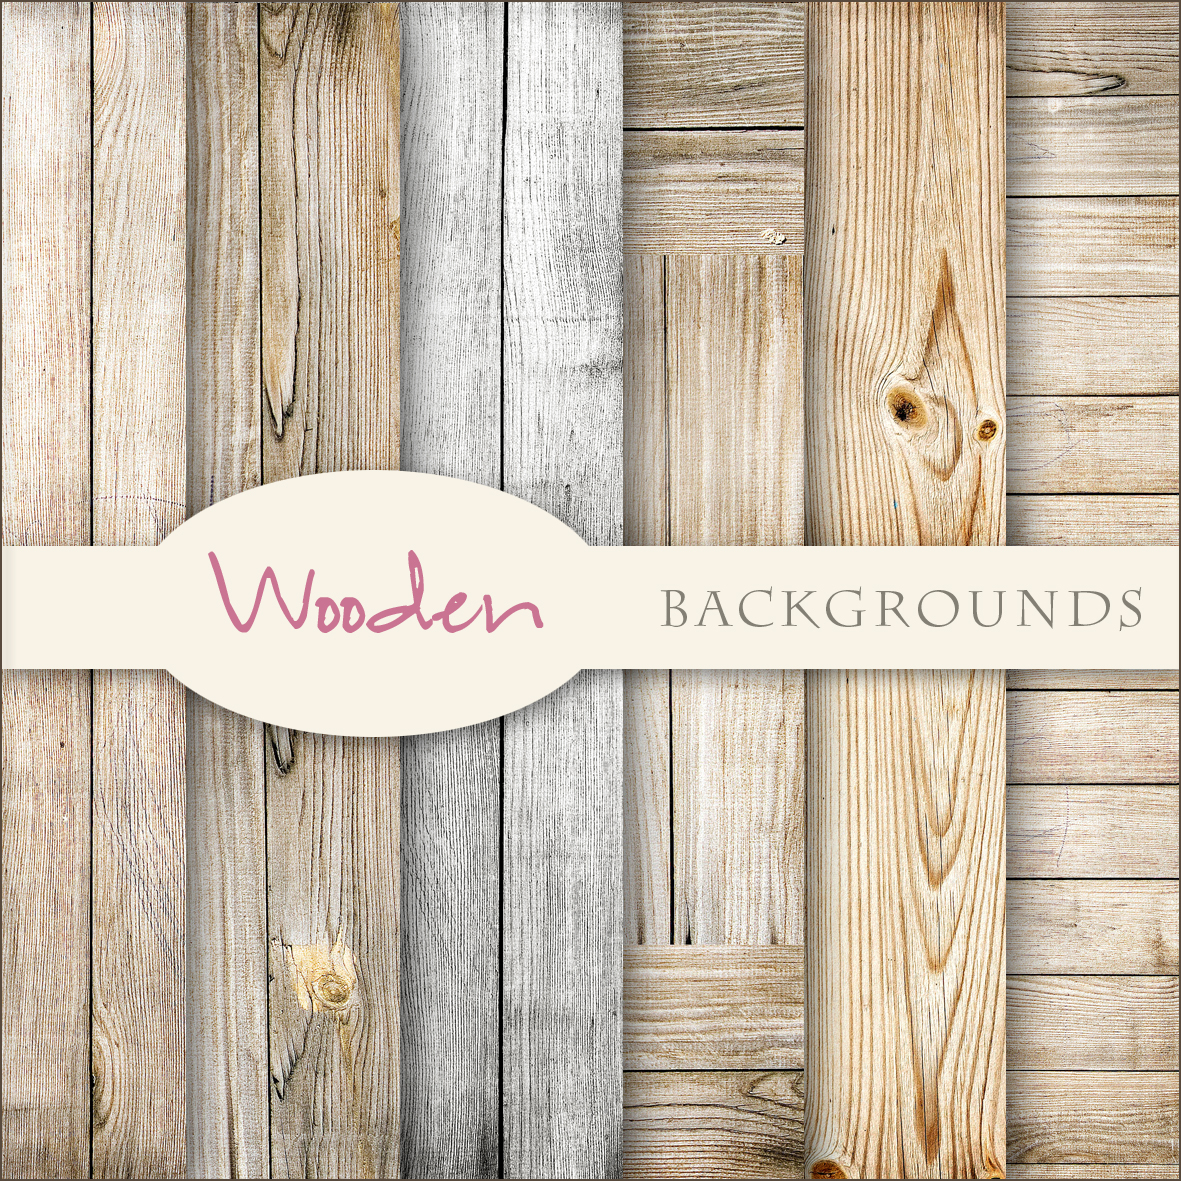 Freebies Firewood Coupons For Hotels In Meridian Ms